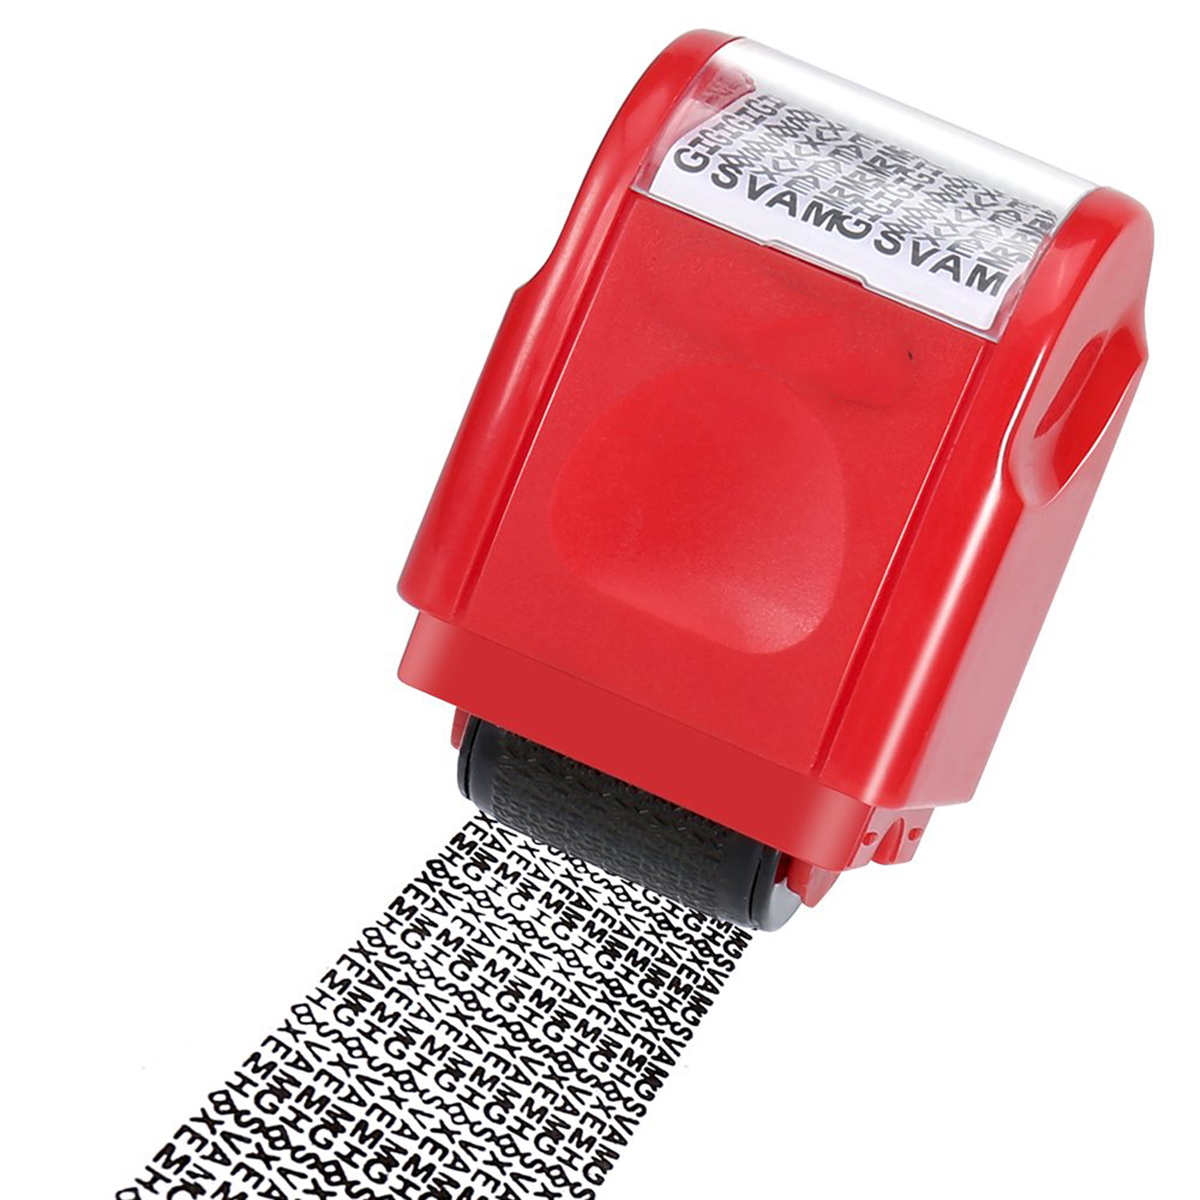 New Creative Identity Privacy Protection Roller Stamp Information Coverage Data Protector Messy Code Roller Stamp